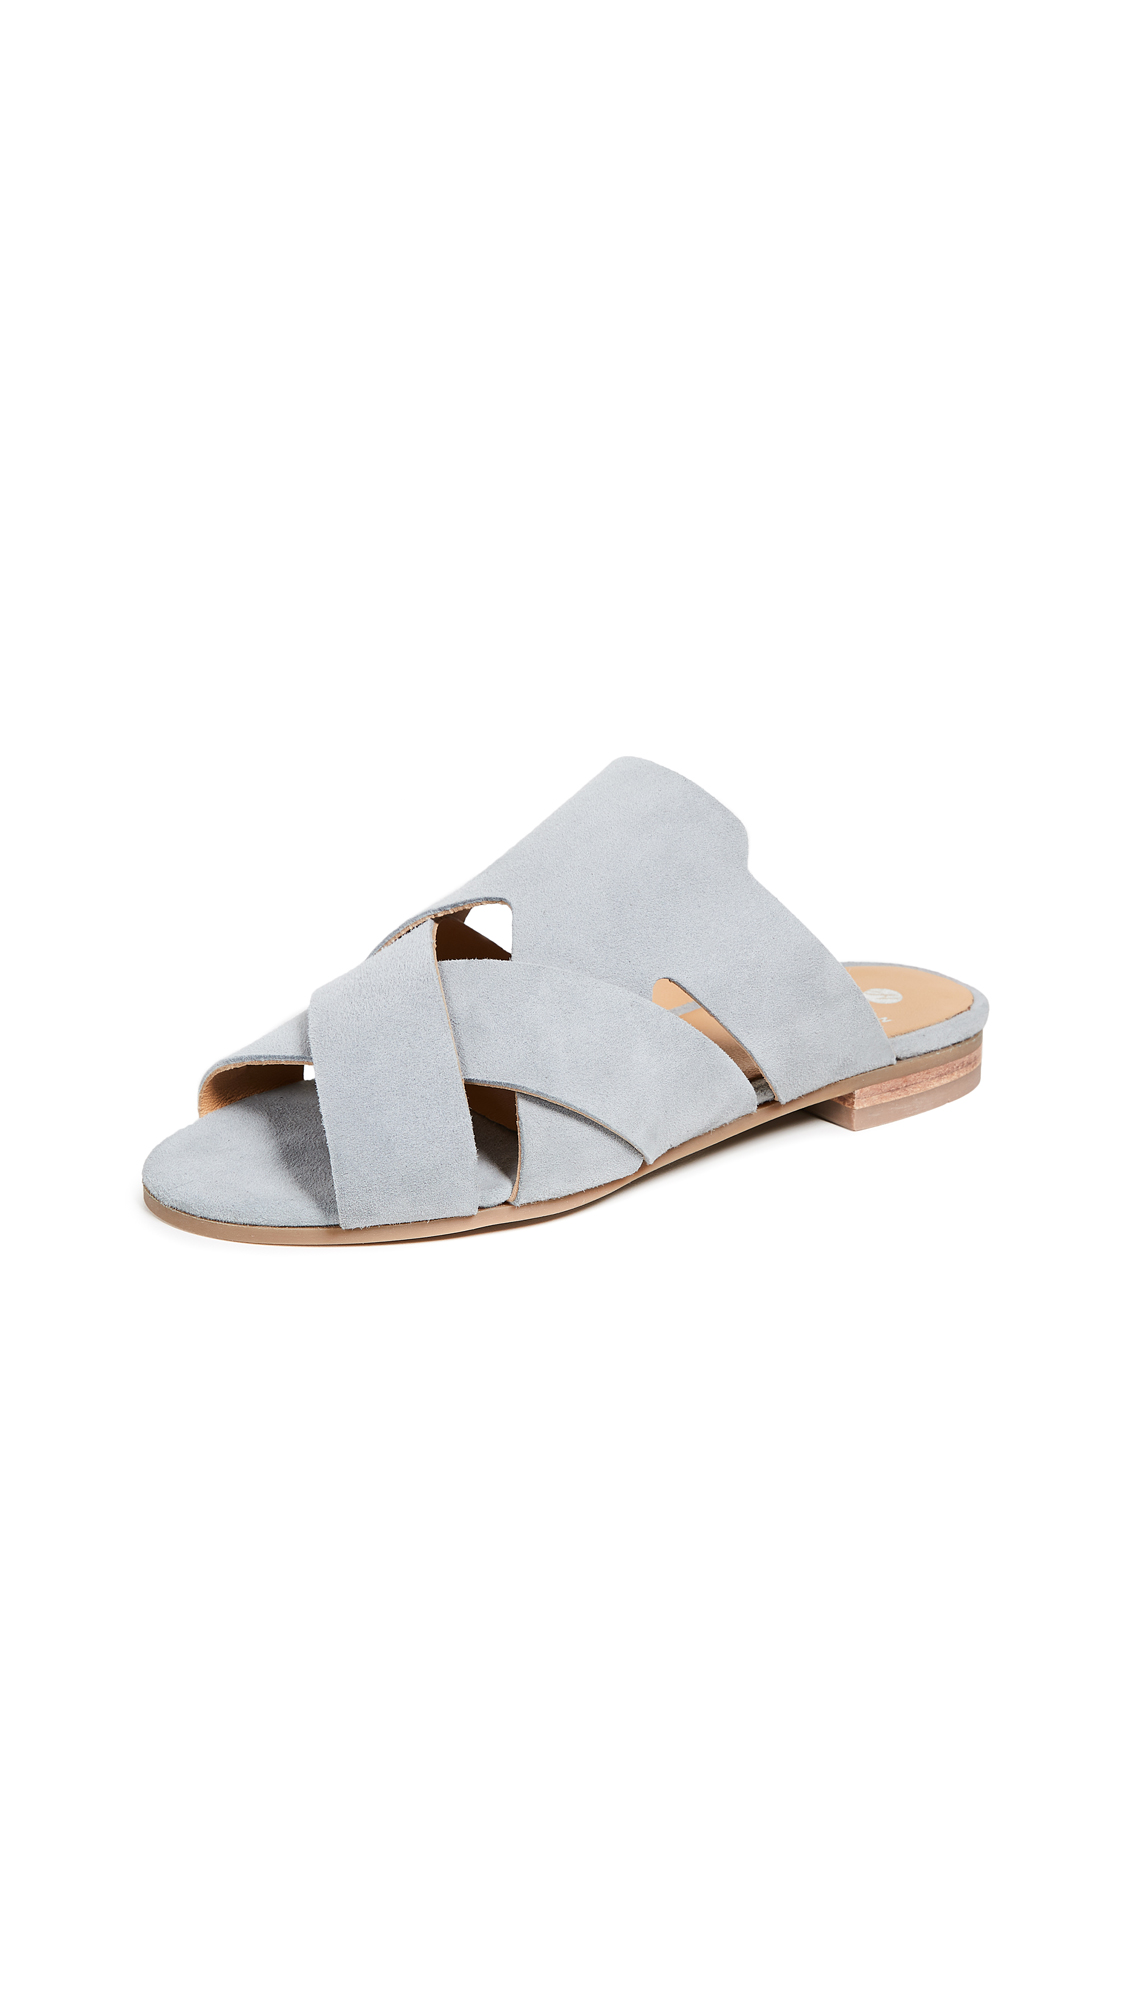 Hudson London Open Toe Slides - Grey